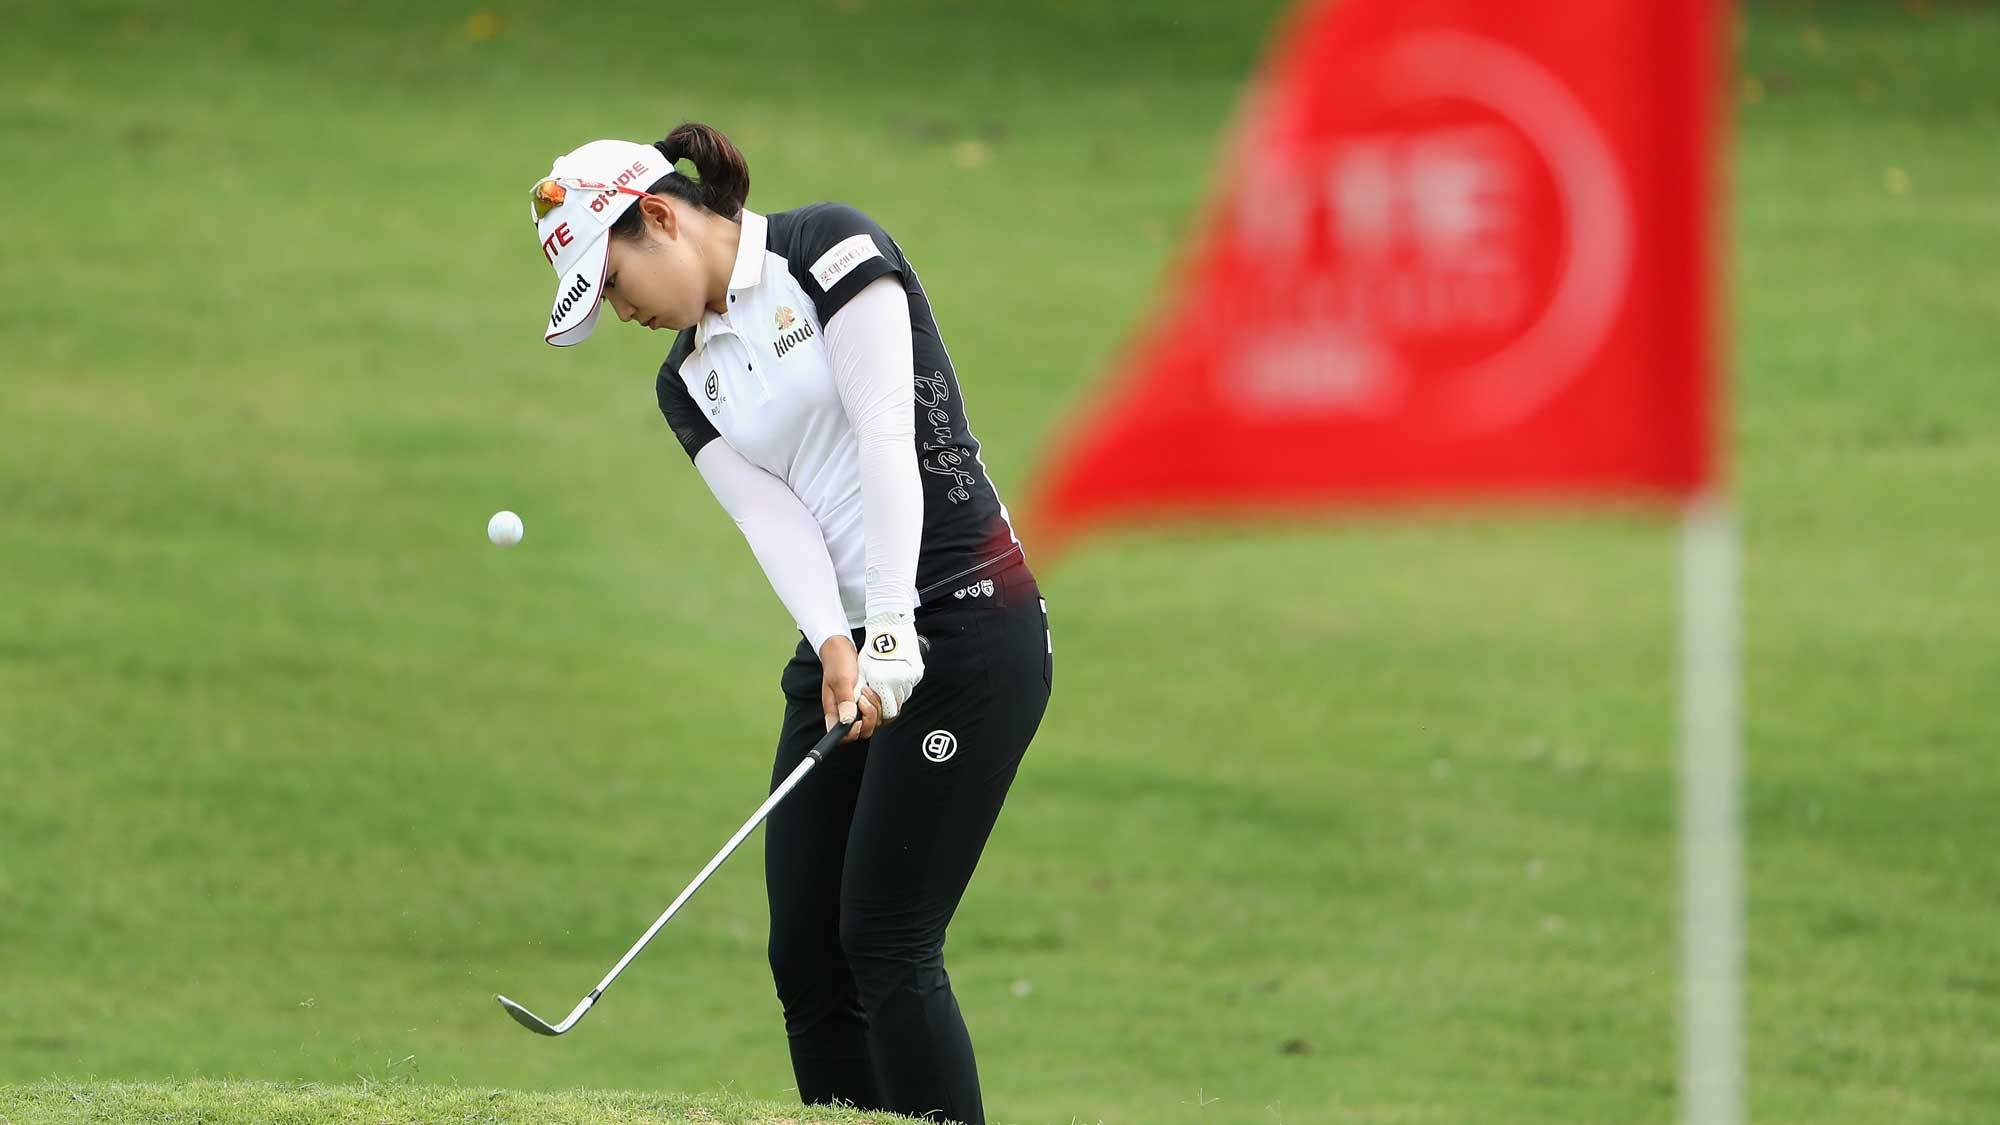 Su-Yeon Jang extends her lead, Cristie Kerr sets tournament & course record @LPGALOTTE   Rd. 3 Recap ==> https://t.co/qH2YBf8H8u https://t.co/C029dFI7rQ